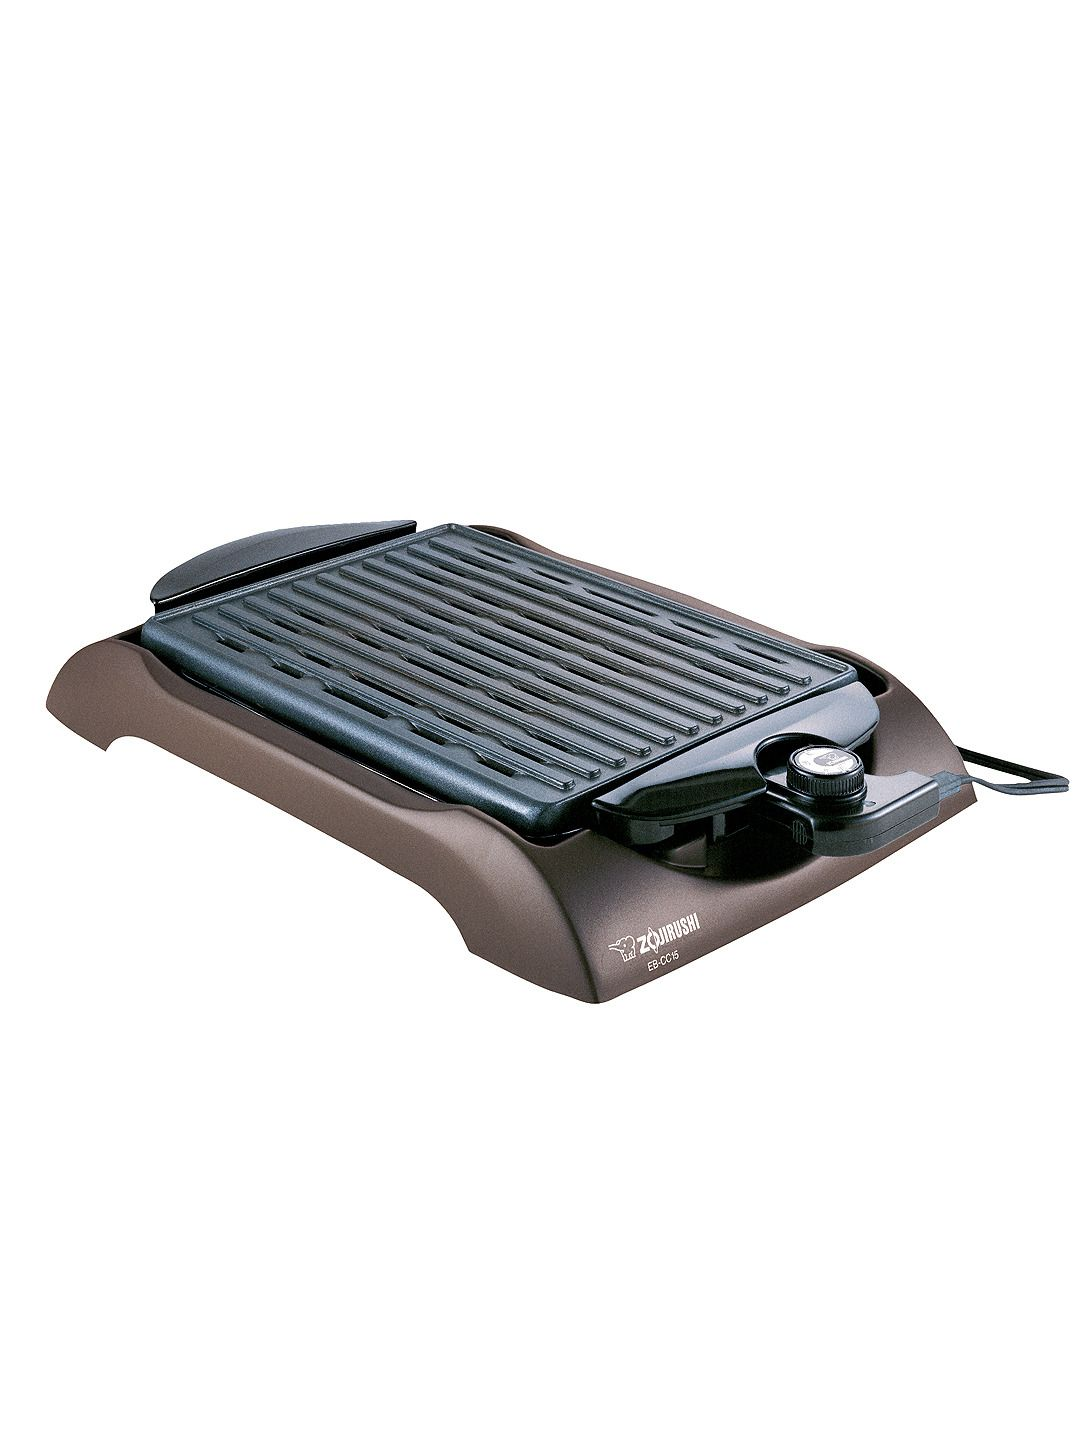 Indoor Electric Grill By Zojirushi At Gilt Indoor Electric Grill Electric Grill Indoor Grill